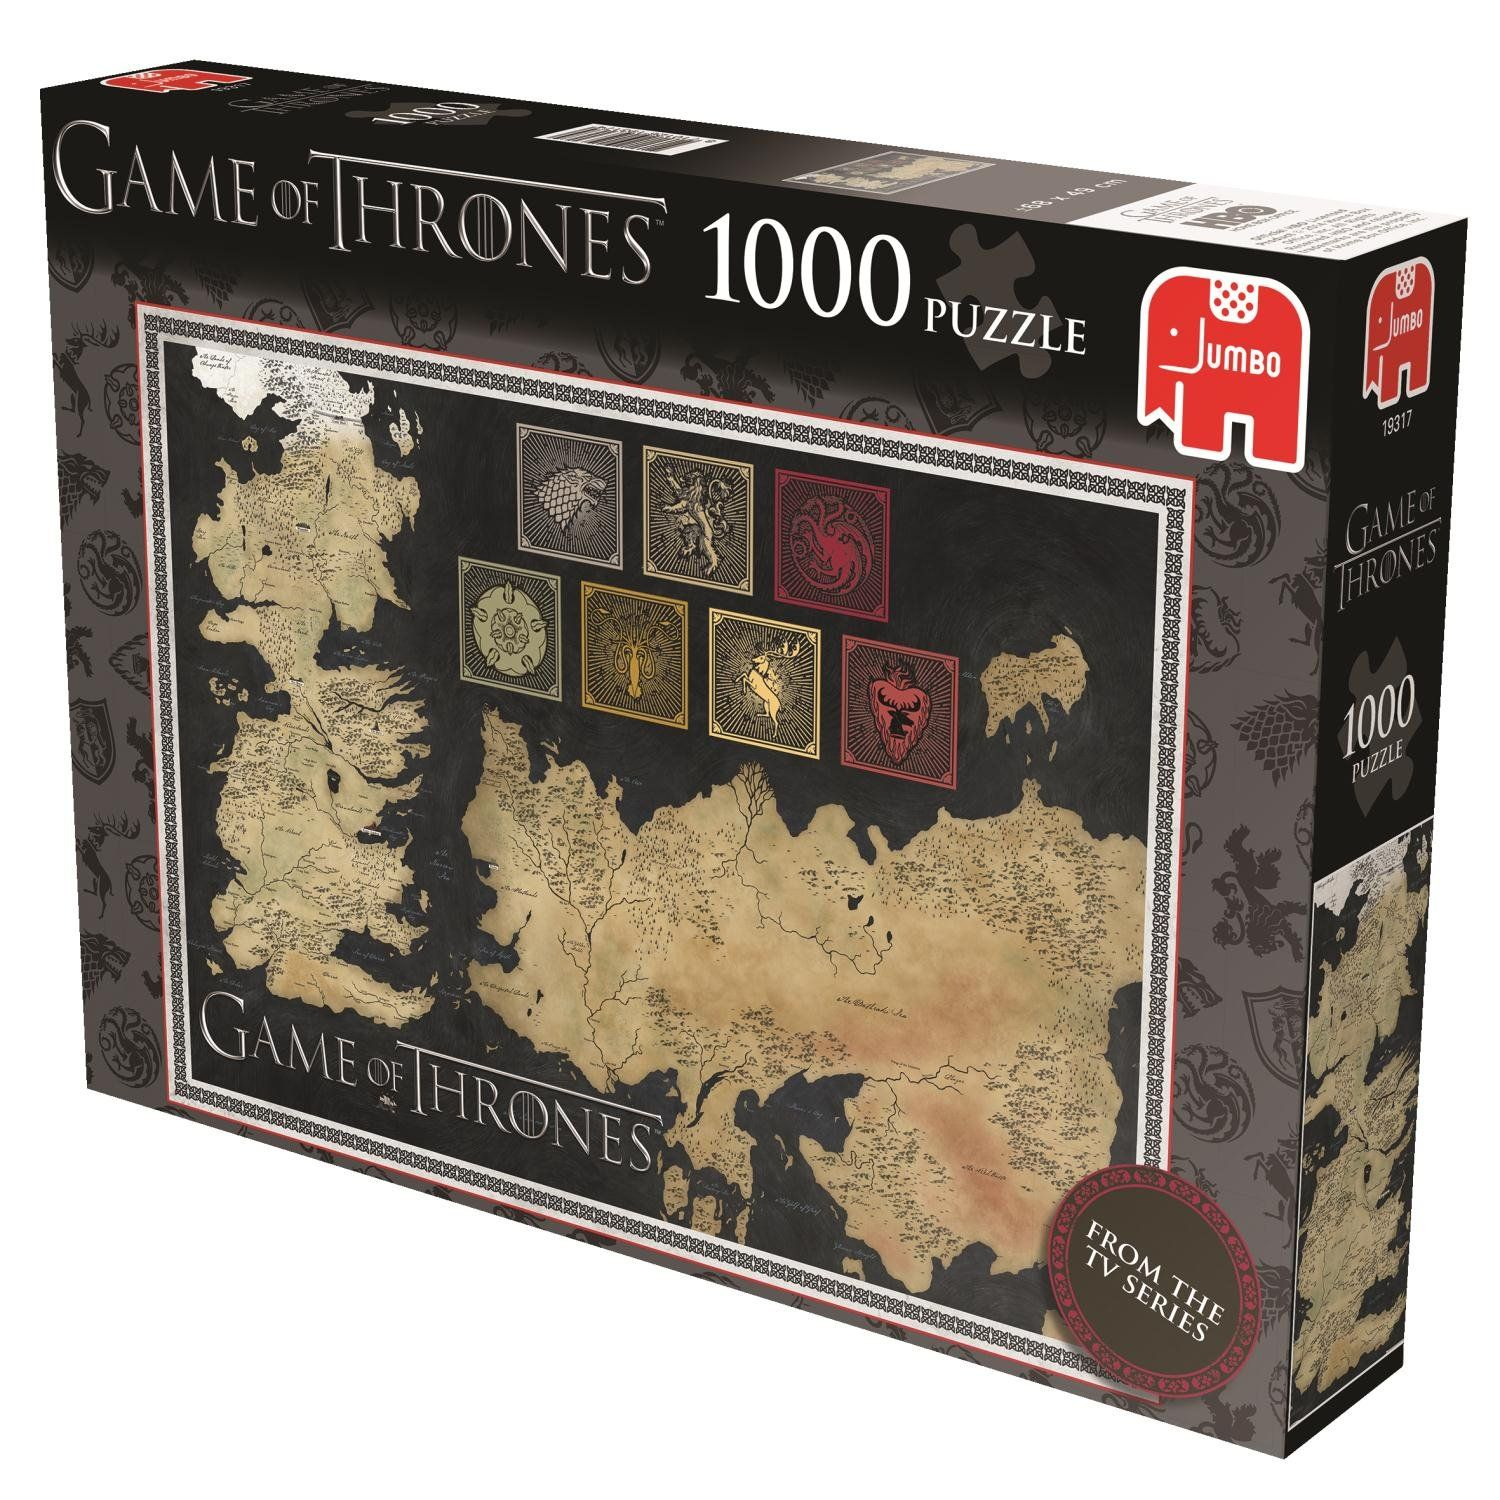 Amazon game of thrones map of the known world jigsaw puzzle amazon game of thrones map of the known world jigsaw puzzle gumiabroncs Images